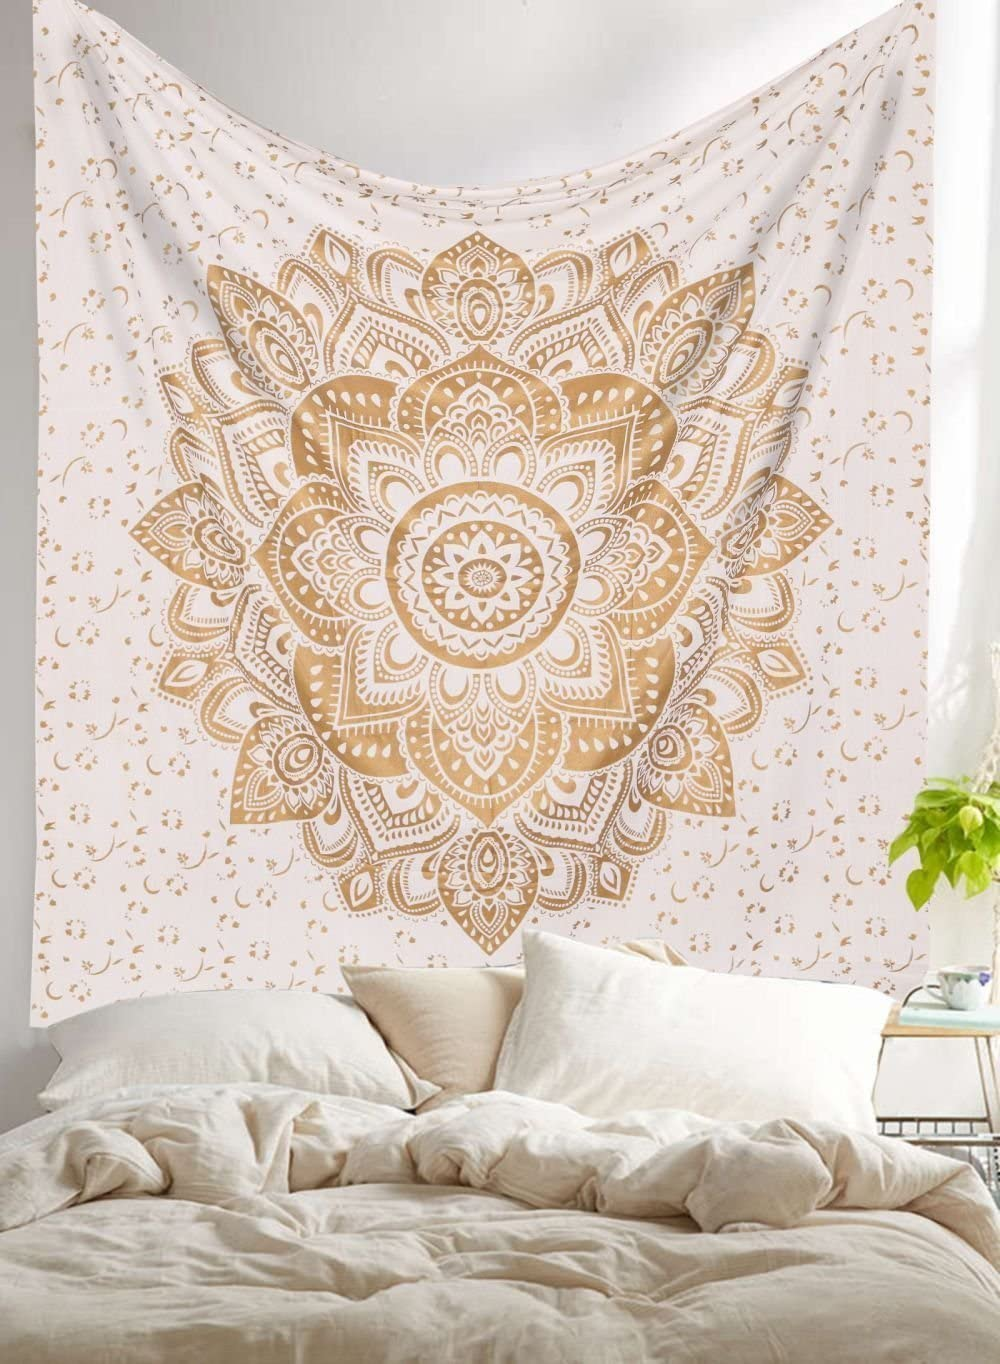 Large Tapestry Queen Size Gold and White Tapestries 90x85 Tapestry Wall Hanging Tapestry Indian Wall Decor Boho Wall Tapestry Indian Wall Blanket